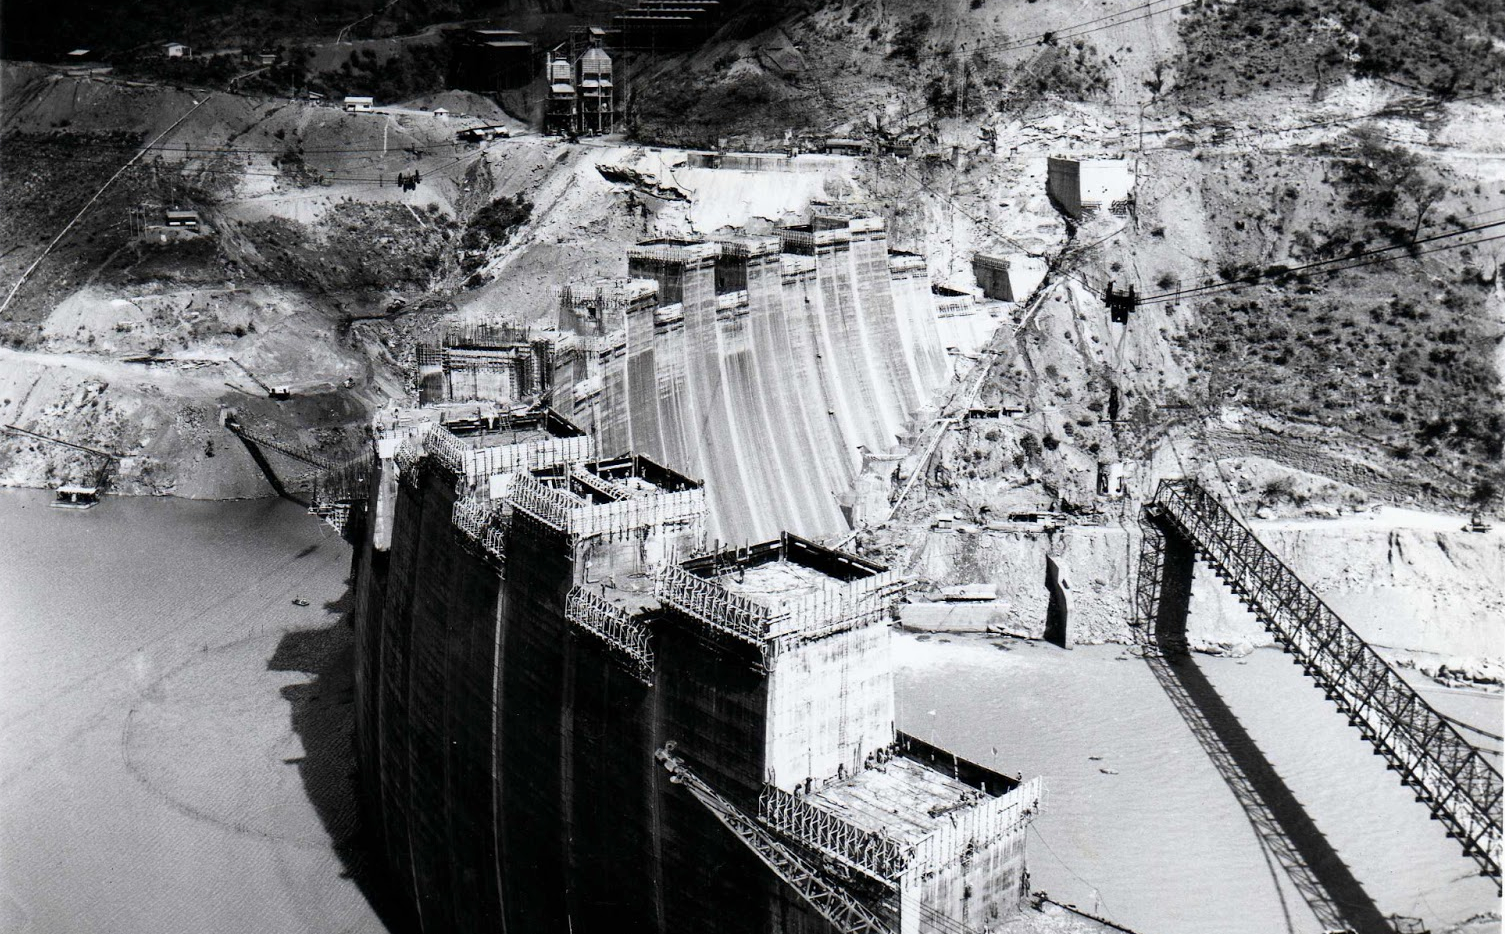 Construction of the Kariba dam wall - 1958